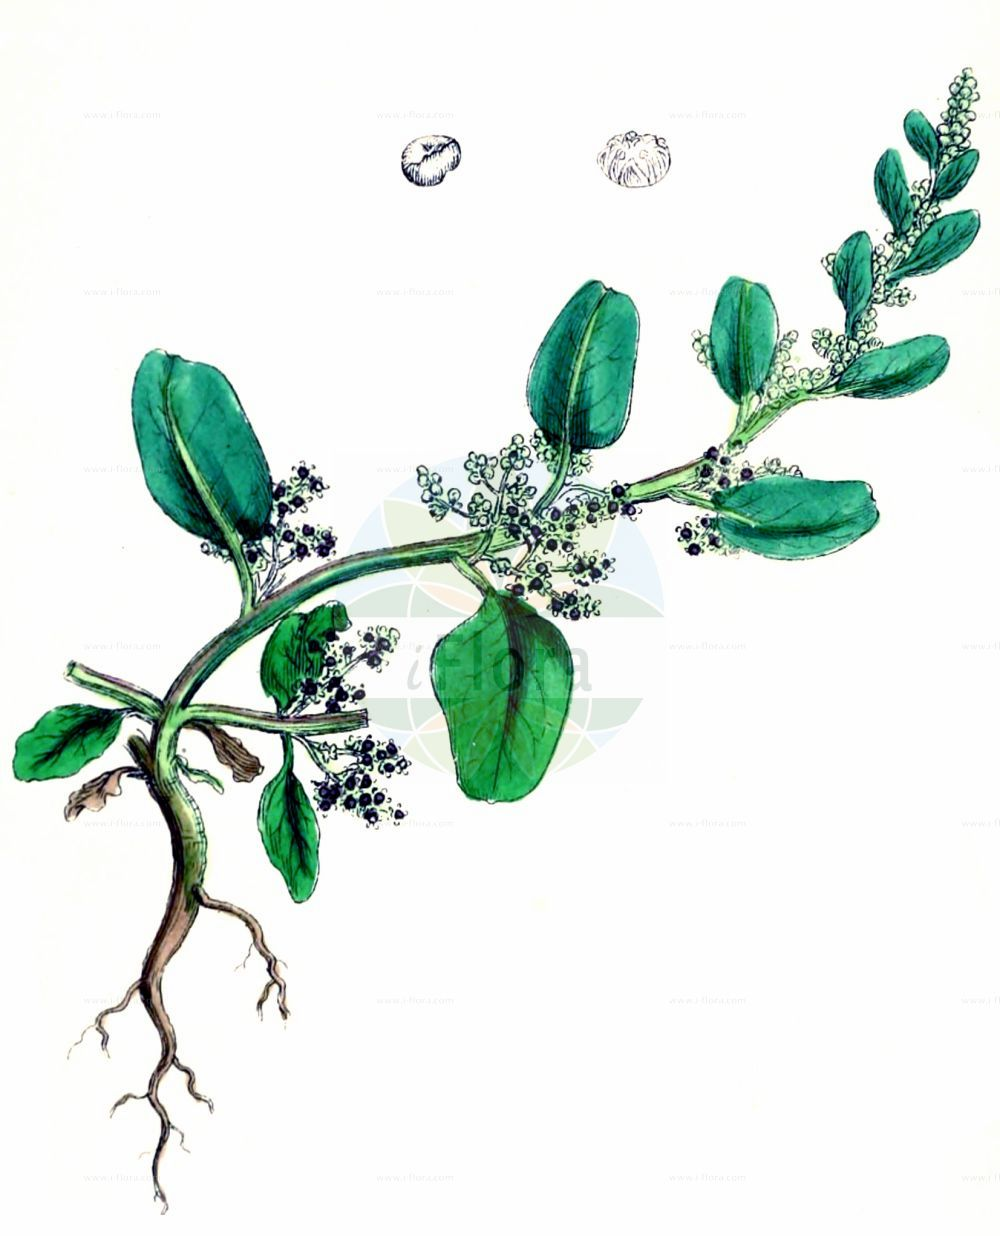 Historische Abbildung von Lipandra polysperma (Vielsamiger Gaensefuss - Many-seeded Goosefoot). Das Bild zeigt Blatt, Bluete, Frucht und Same. ---- Historical Drawing of Lipandra polysperma (Vielsamiger Gaensefuss - Many-seeded Goosefoot).The image is showing leaf, flower, fruit and seed.(Lipandra polysperma,Vielsamiger Gaensefuss,Many-seeded Goosefoot,Chenopodium acutifolium,Chenopodium polyspermum,Lipandra polysperma,Vielsamiger Gaensefuss,Many-seeded Goosefoot,Allseed,Manyseed Goosefoot,Lipandra,Amaranthaceae,Fuchsschwanzgewaechse,Pigweed family,Blatt,Bluete,Frucht,Same,leaf,flower,fruit,seed,Sowerby (1790-1813))